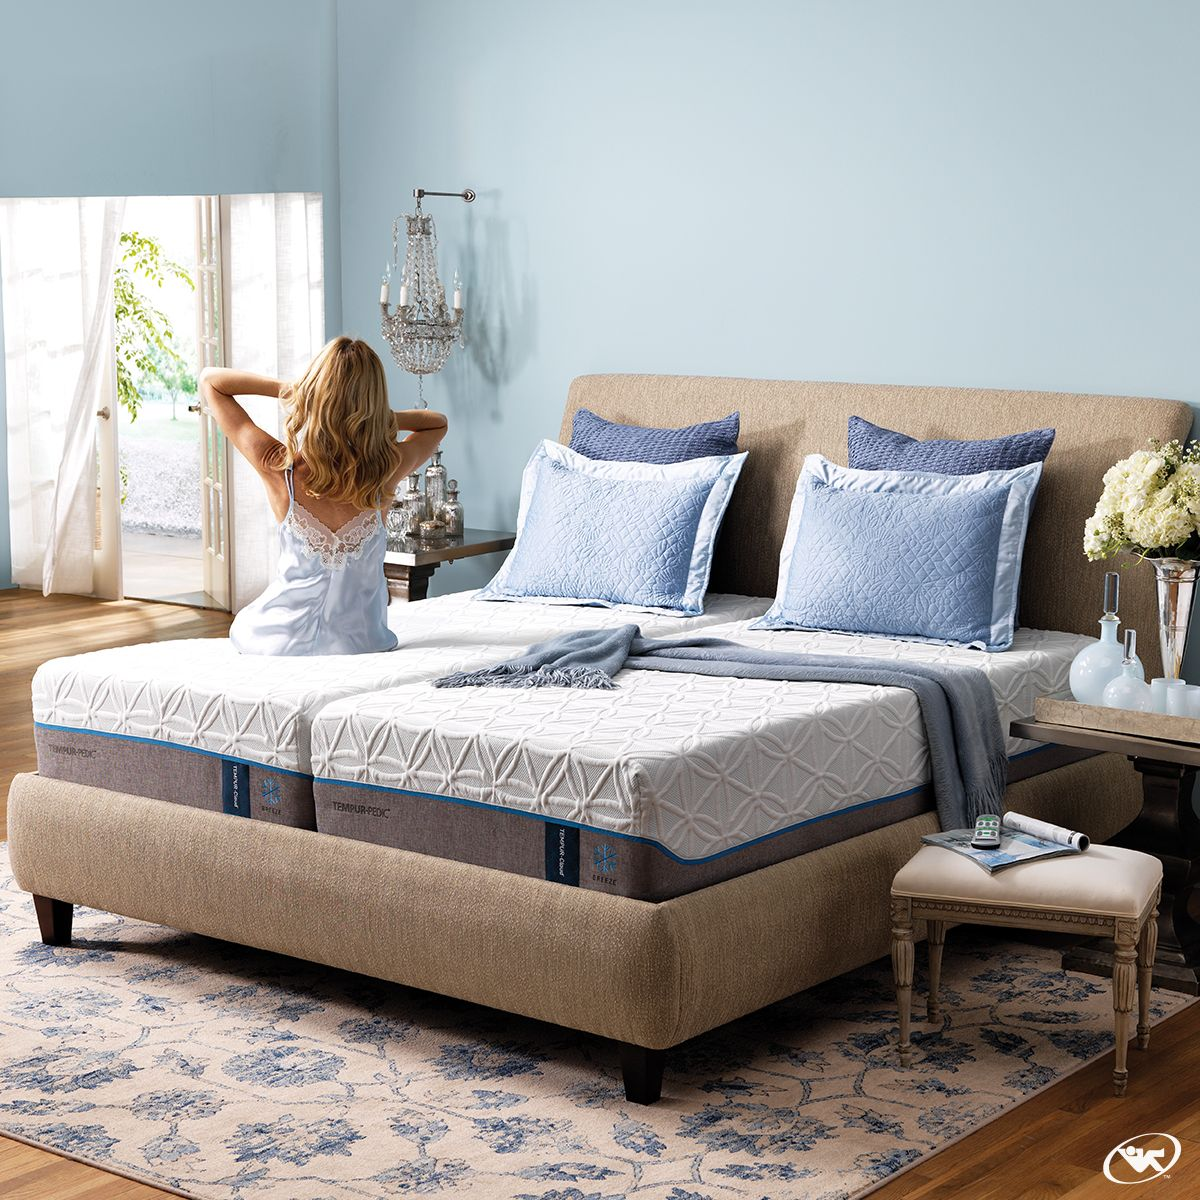 Get your best sleep when you invest in a quality mattress